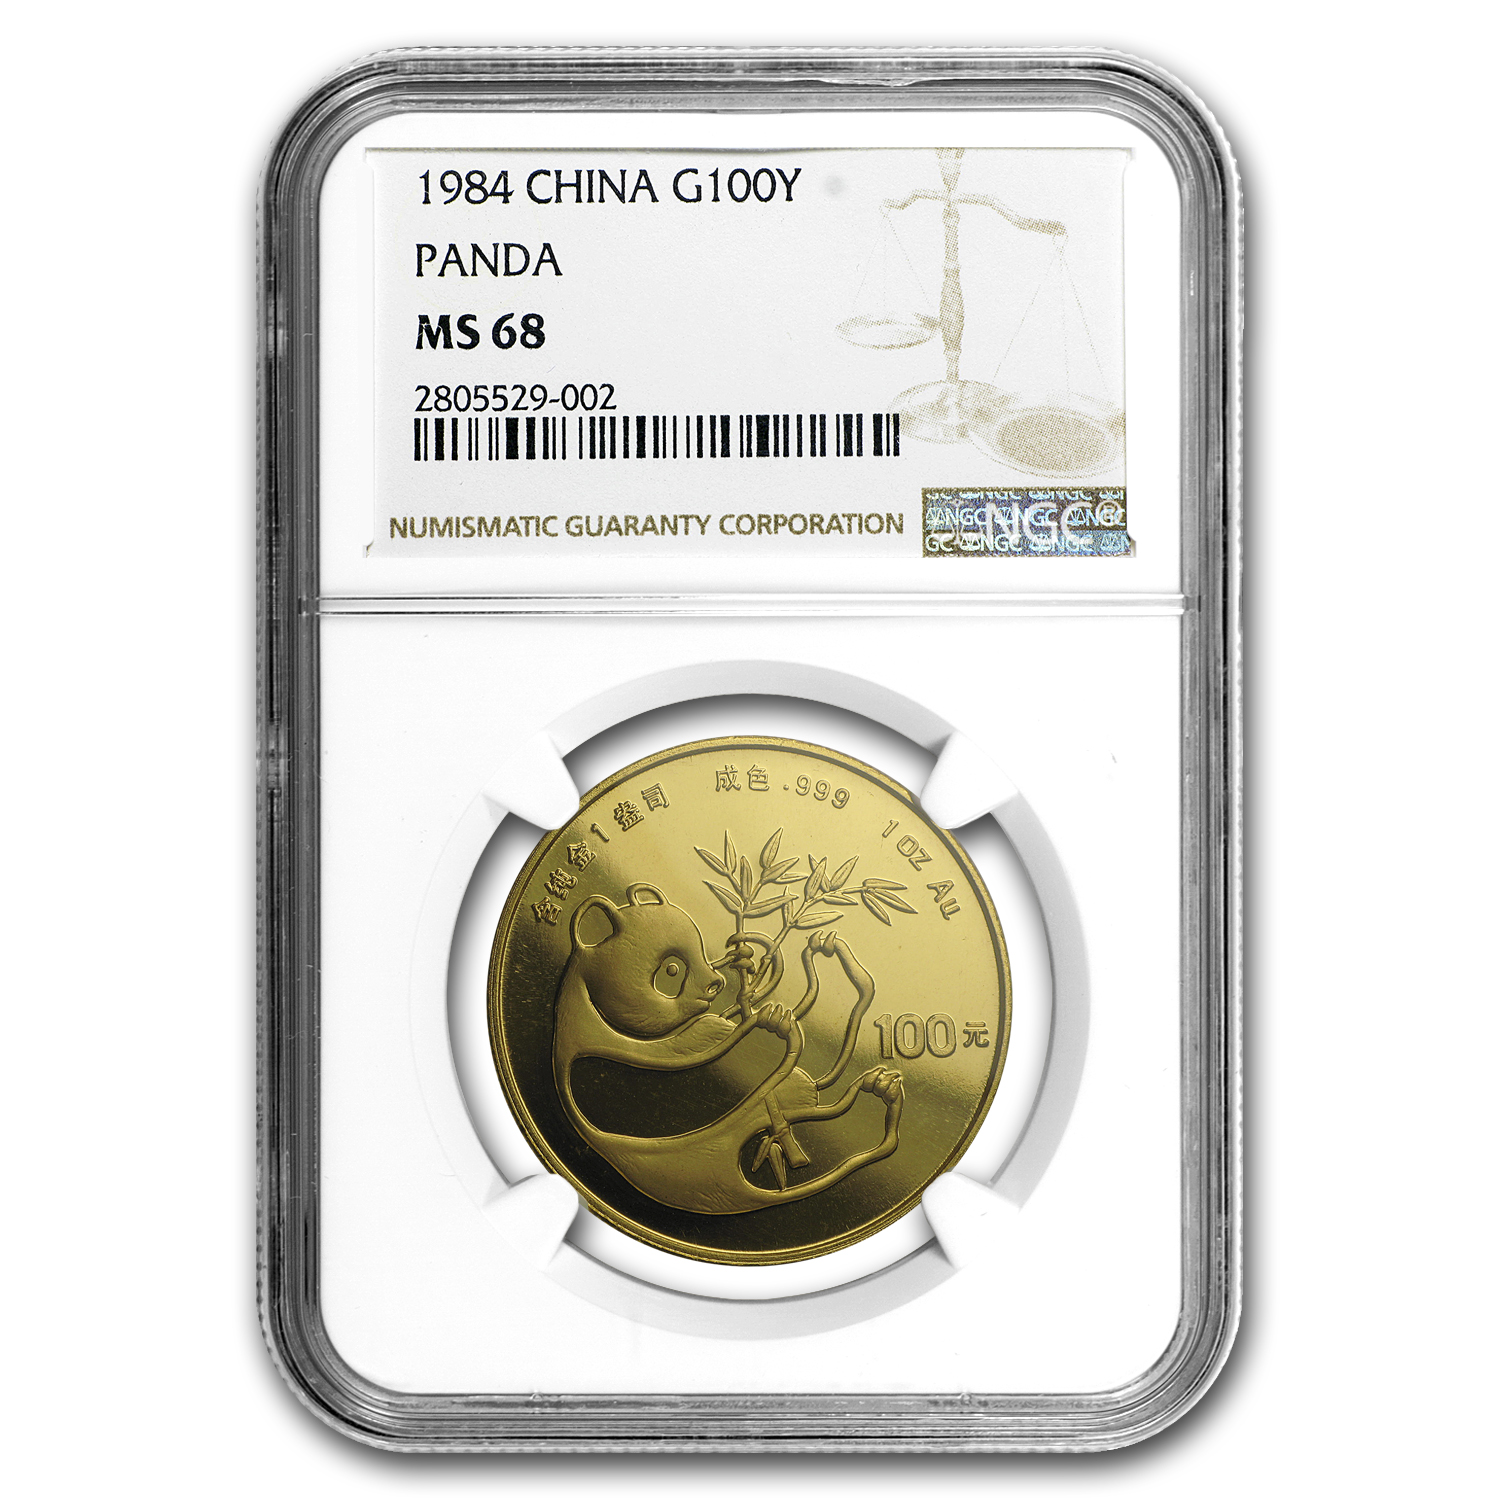 1984 1 oz Gold Chinese Panda MS-68 NGC